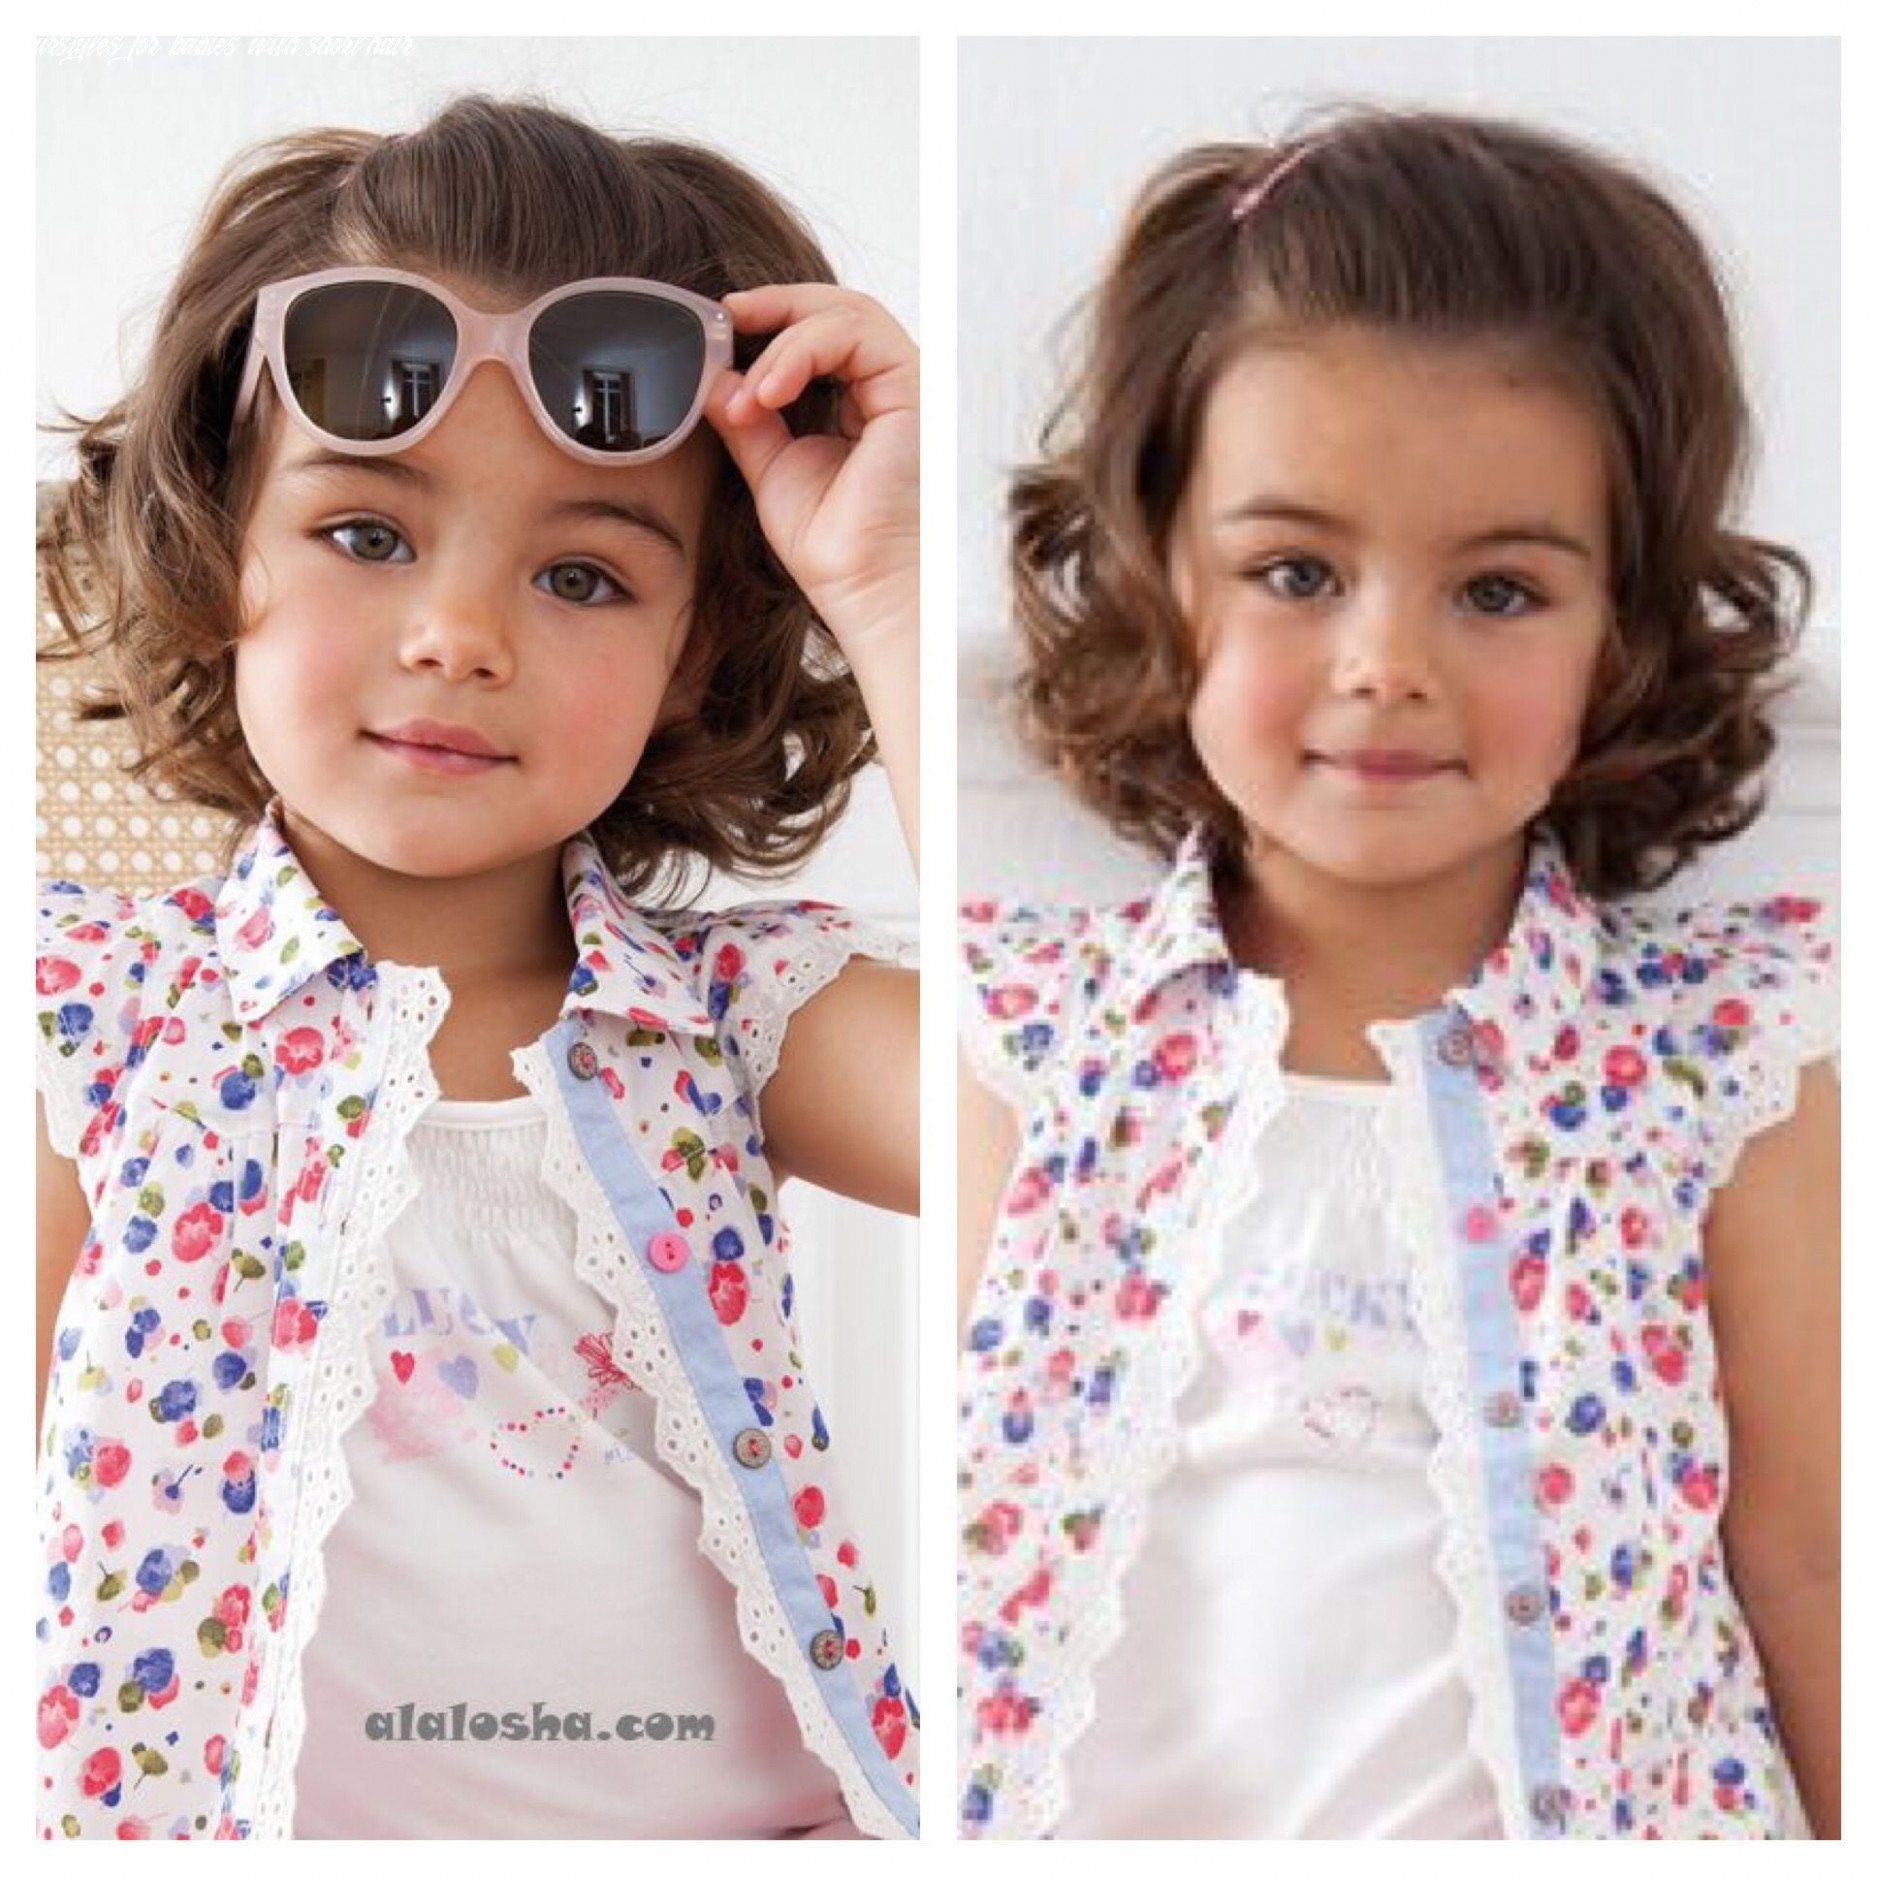 Hairstyles for Babies with Short Curly Hair New Hair Styles for ...